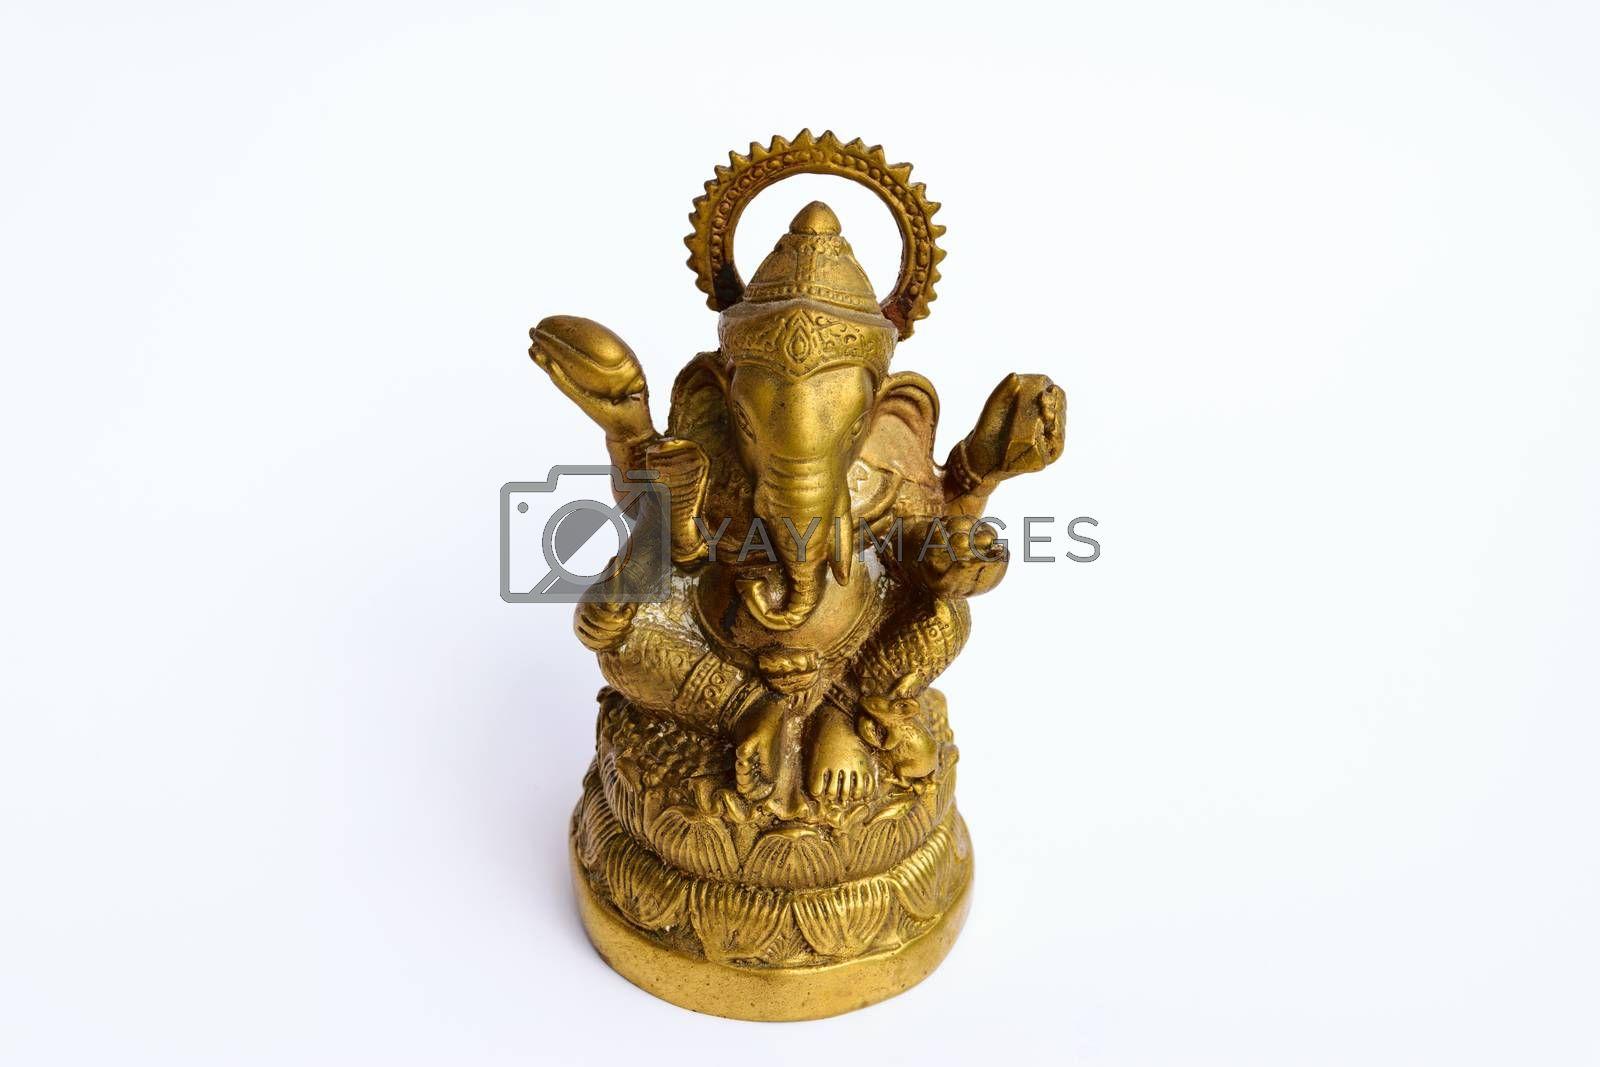 an elephant-headed deity, son of Shiva and Parvati. Worshiped as the remover of obstacles and patron of learning, he is usually depicted colored red, with a potbelly and one broken tusk, riding a rat.